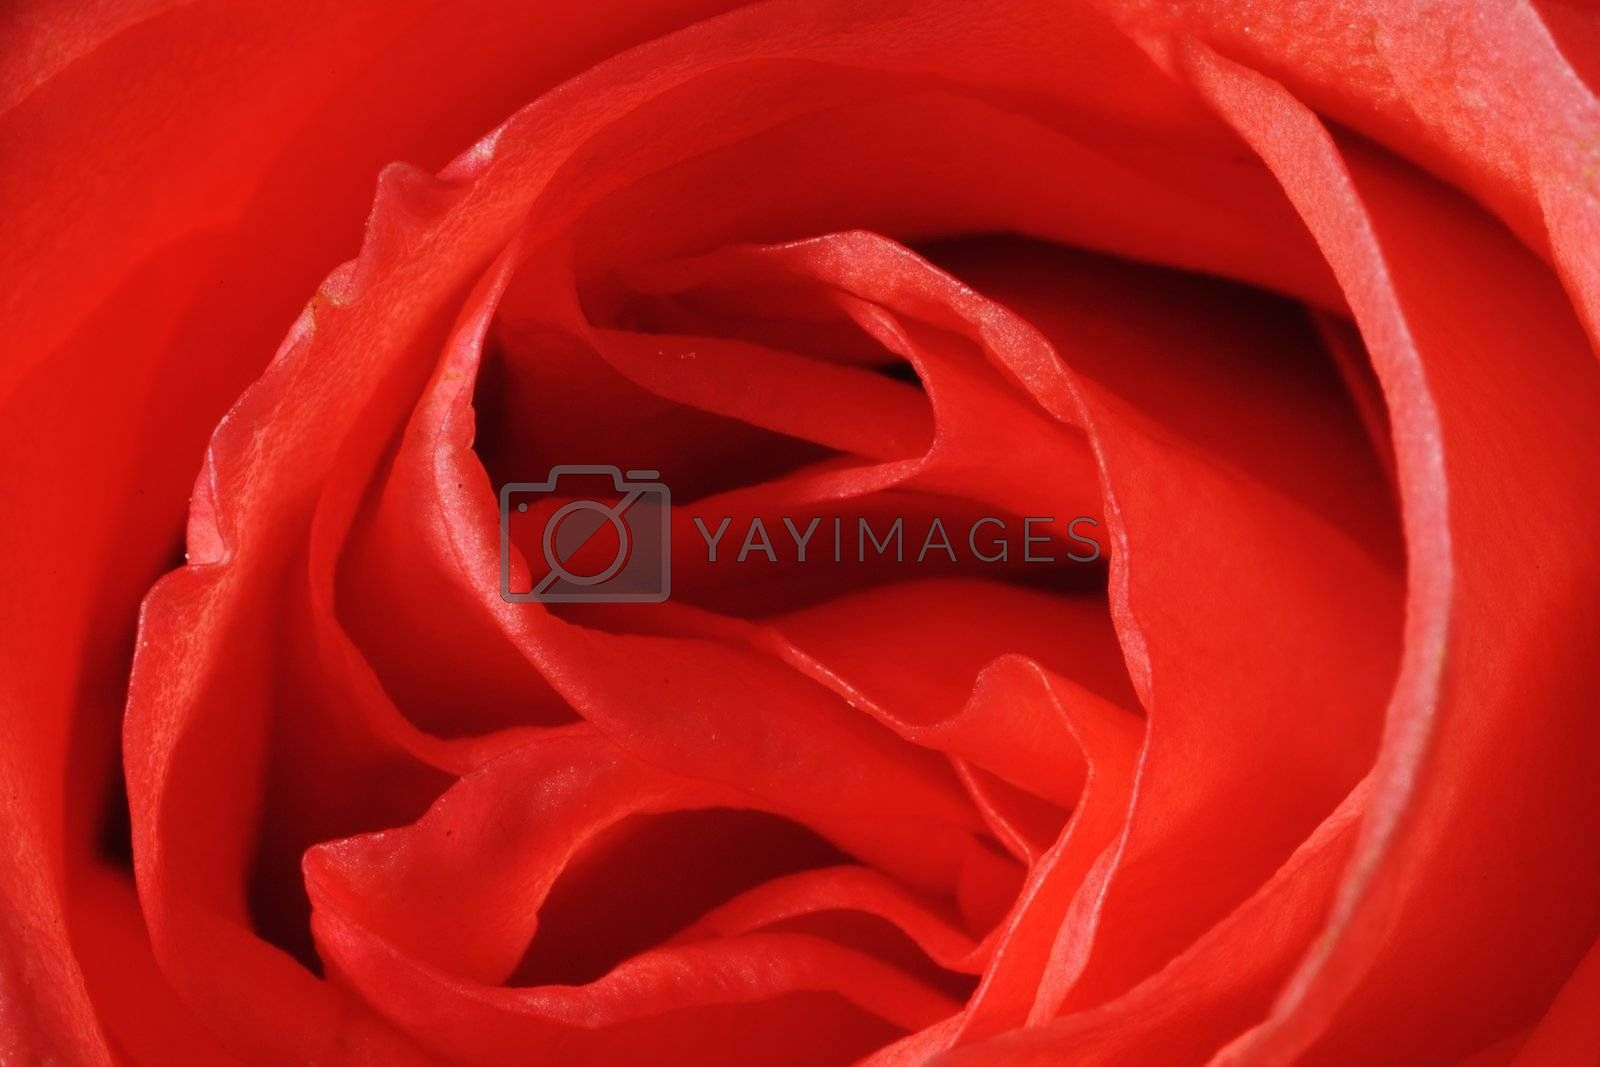 Close-up shot of a red rose flower